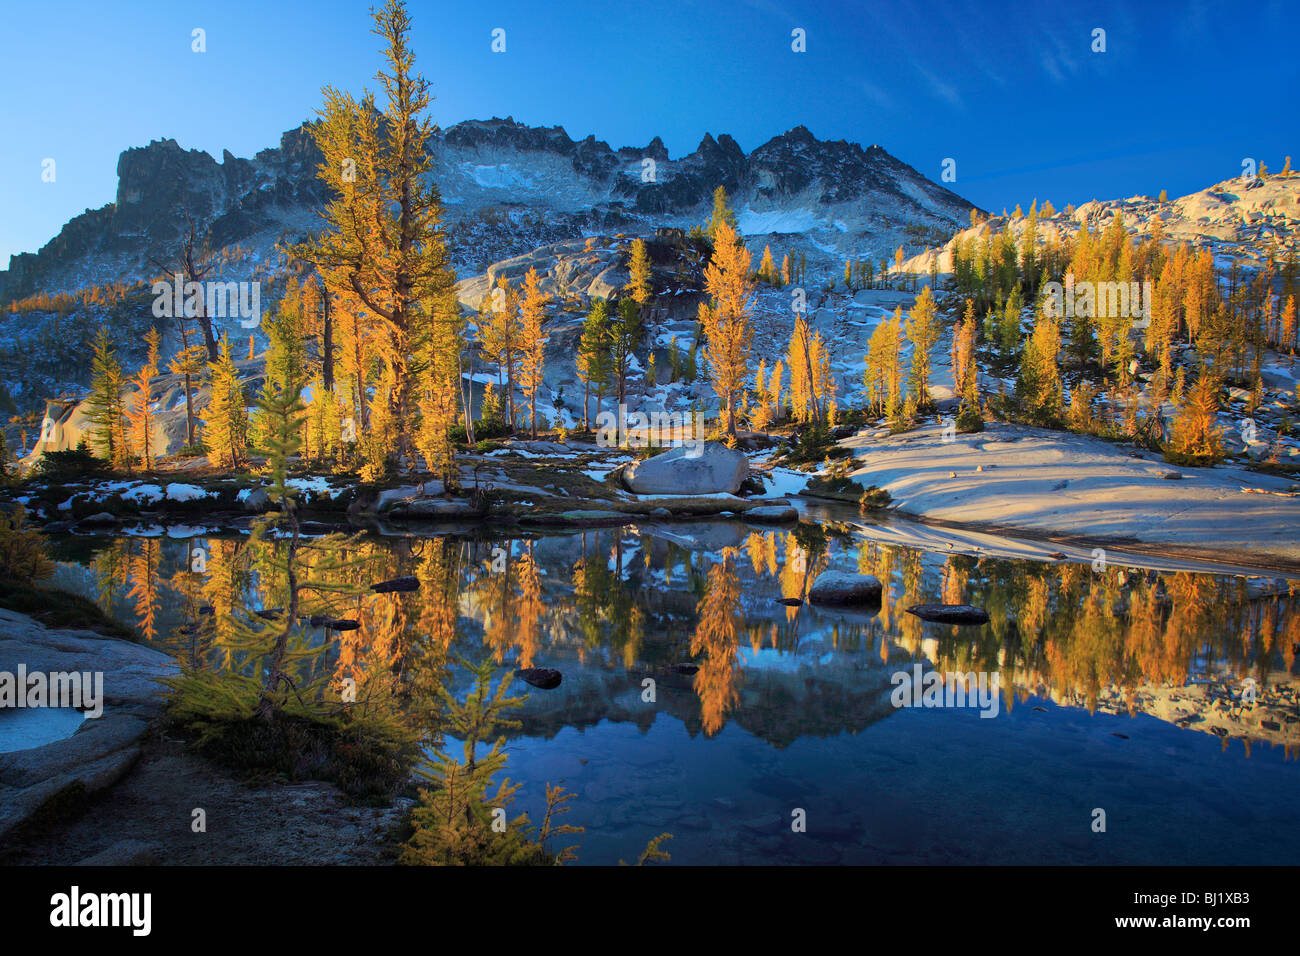 Larch trees in the Enchantment Lakes wilderness in Washington state, USA - Stock Image